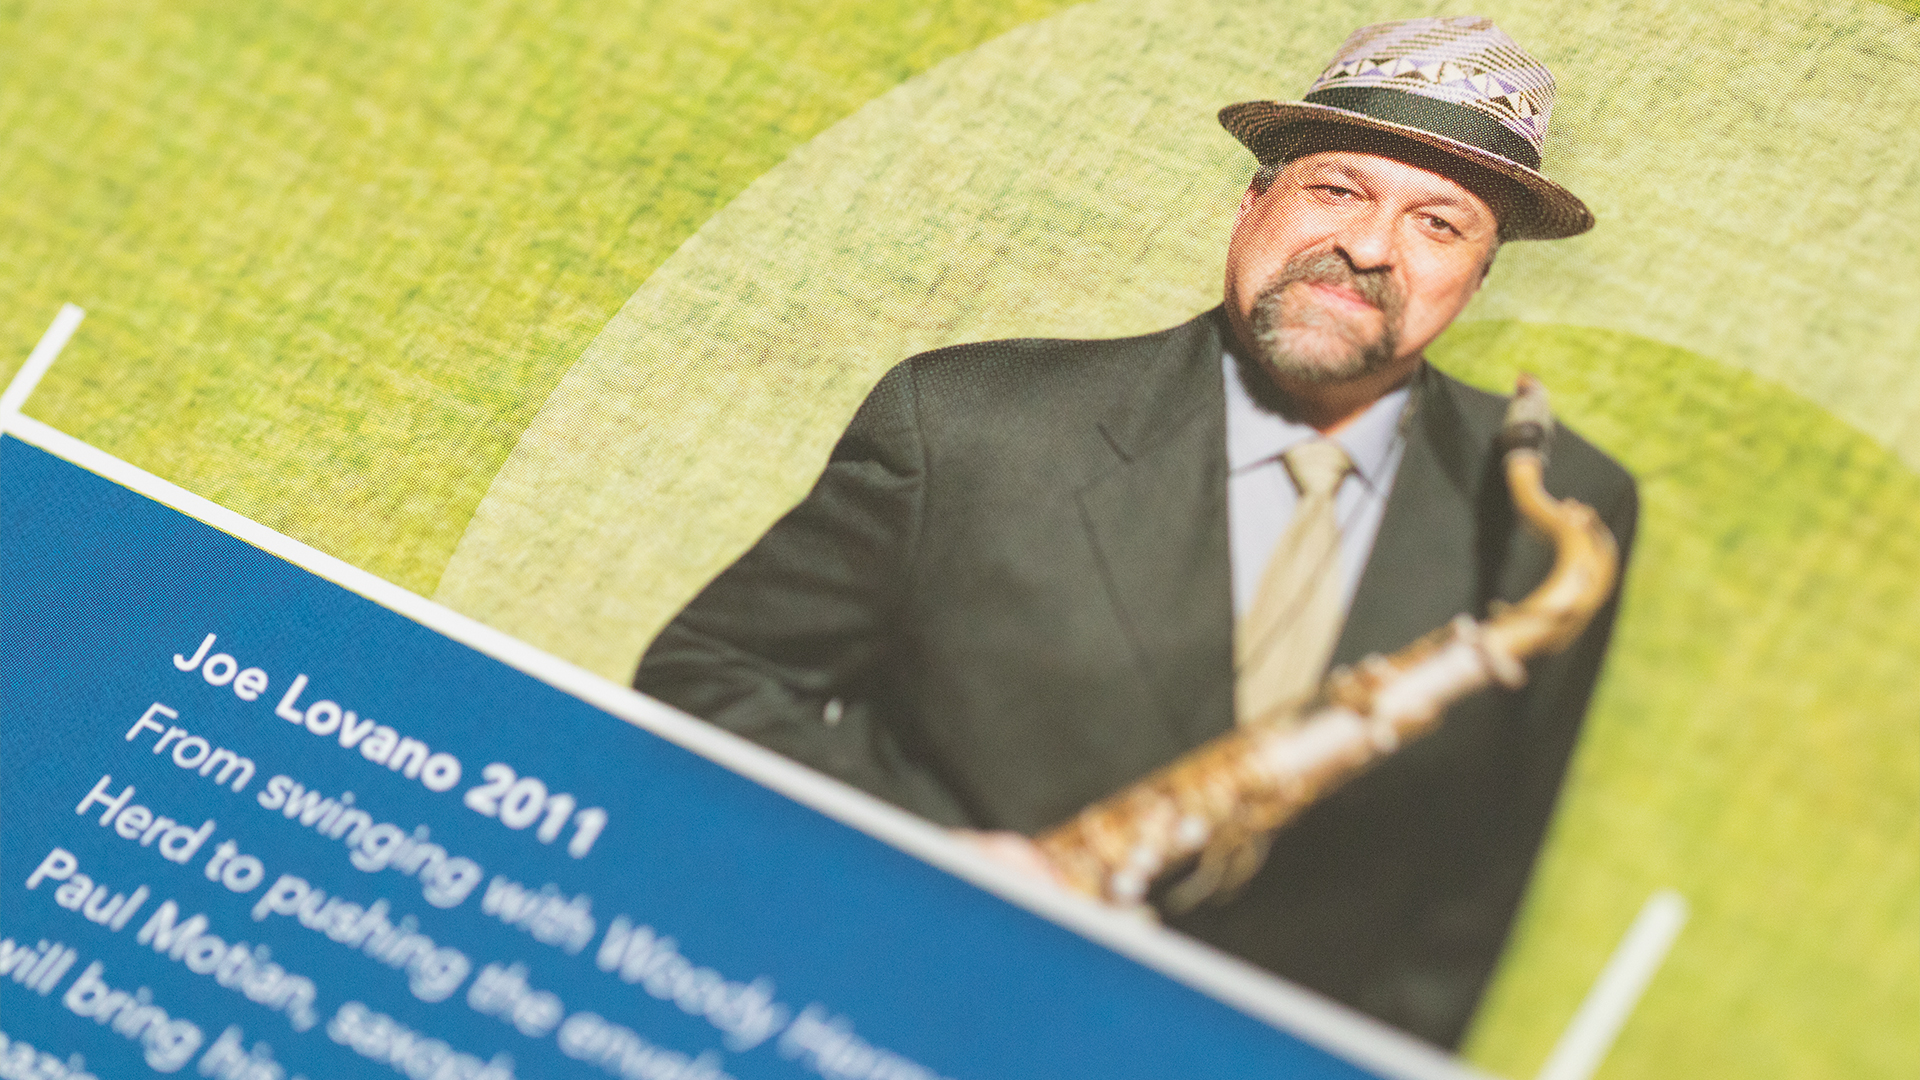 Print – Workshop Mailer – Poster Side (Joe Lovano Close-Up)